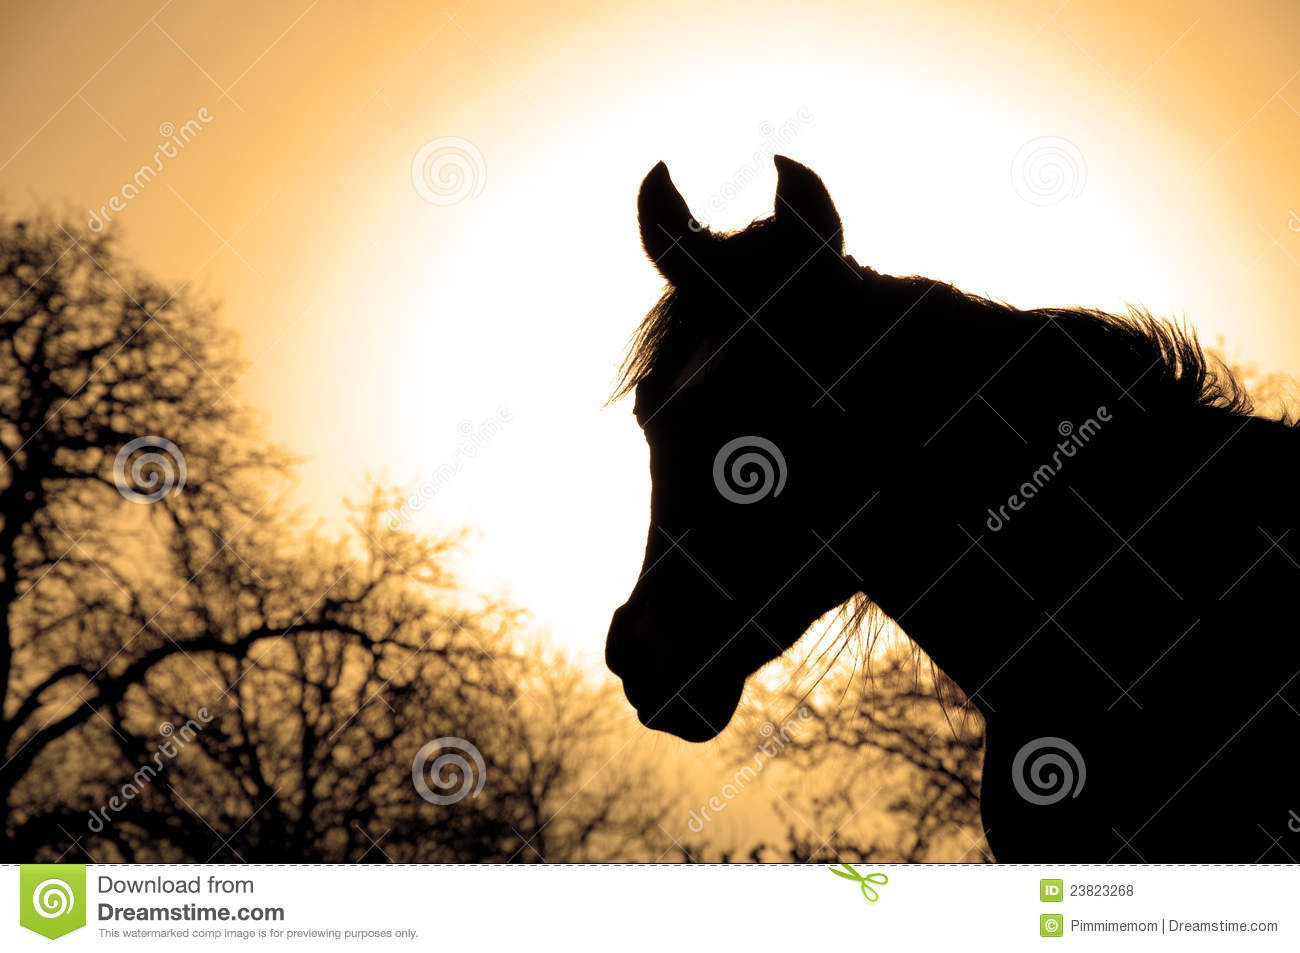 575 Profile Beautiful Arabian Horse Photos Free Royalty Free Stock Photos From Dreamstime